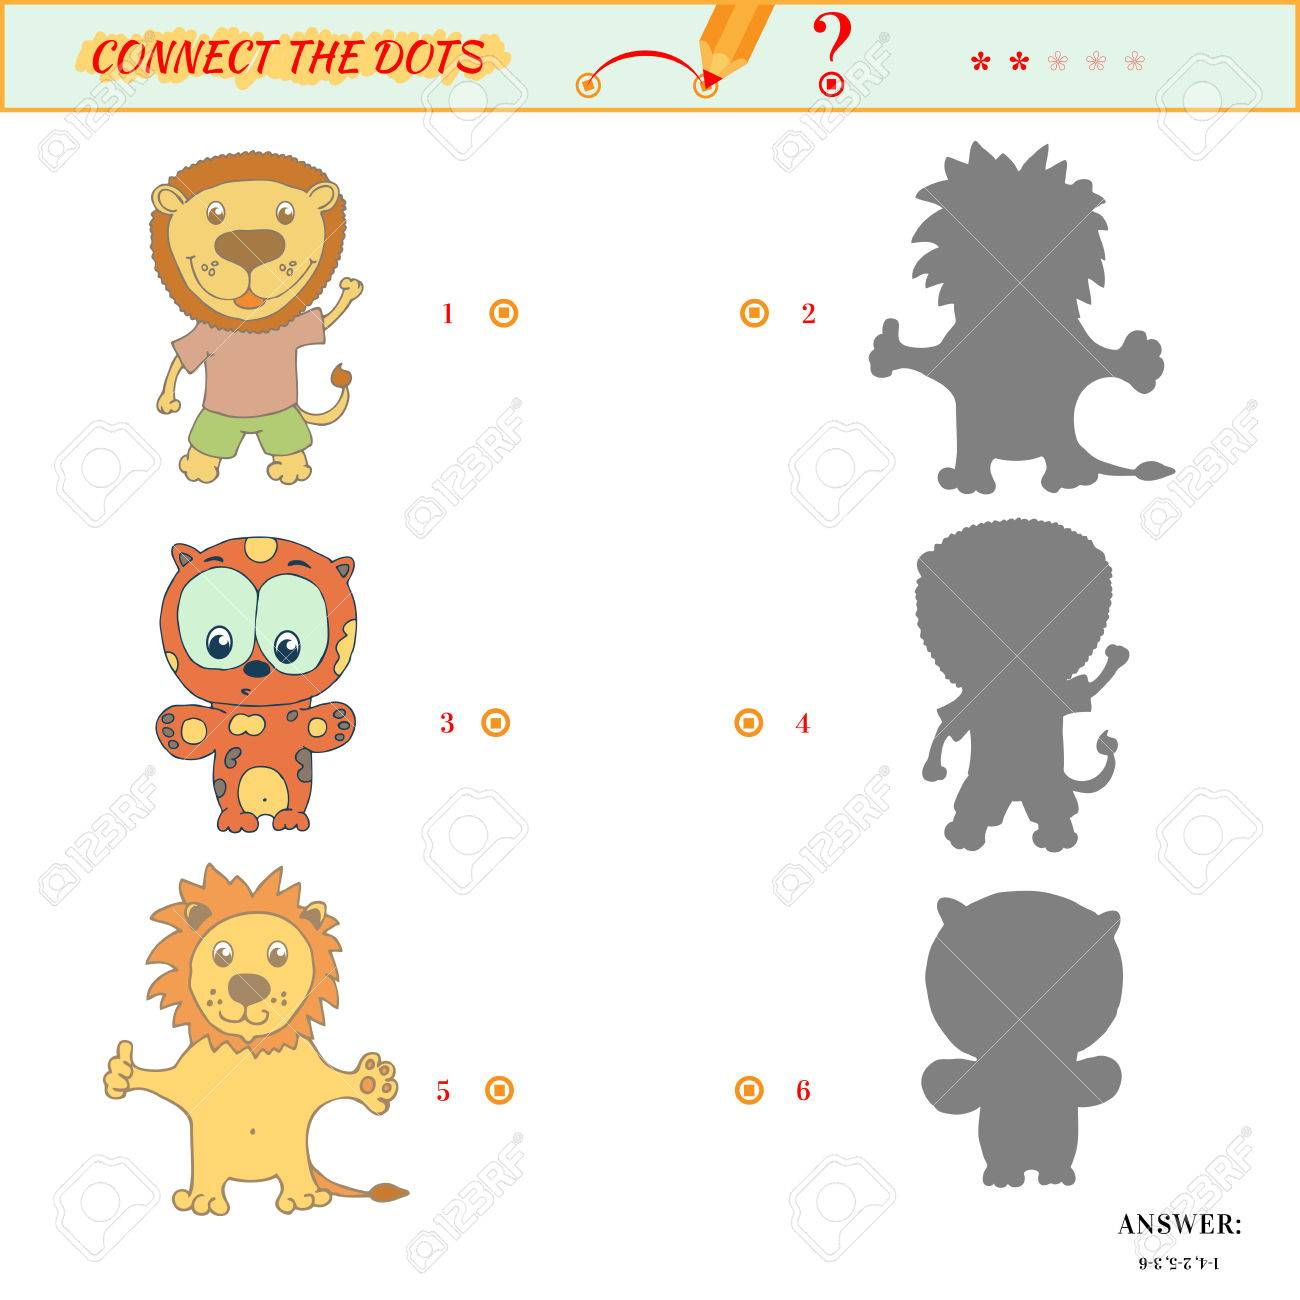 visual puzzle or picture riddle shadow matching game connect